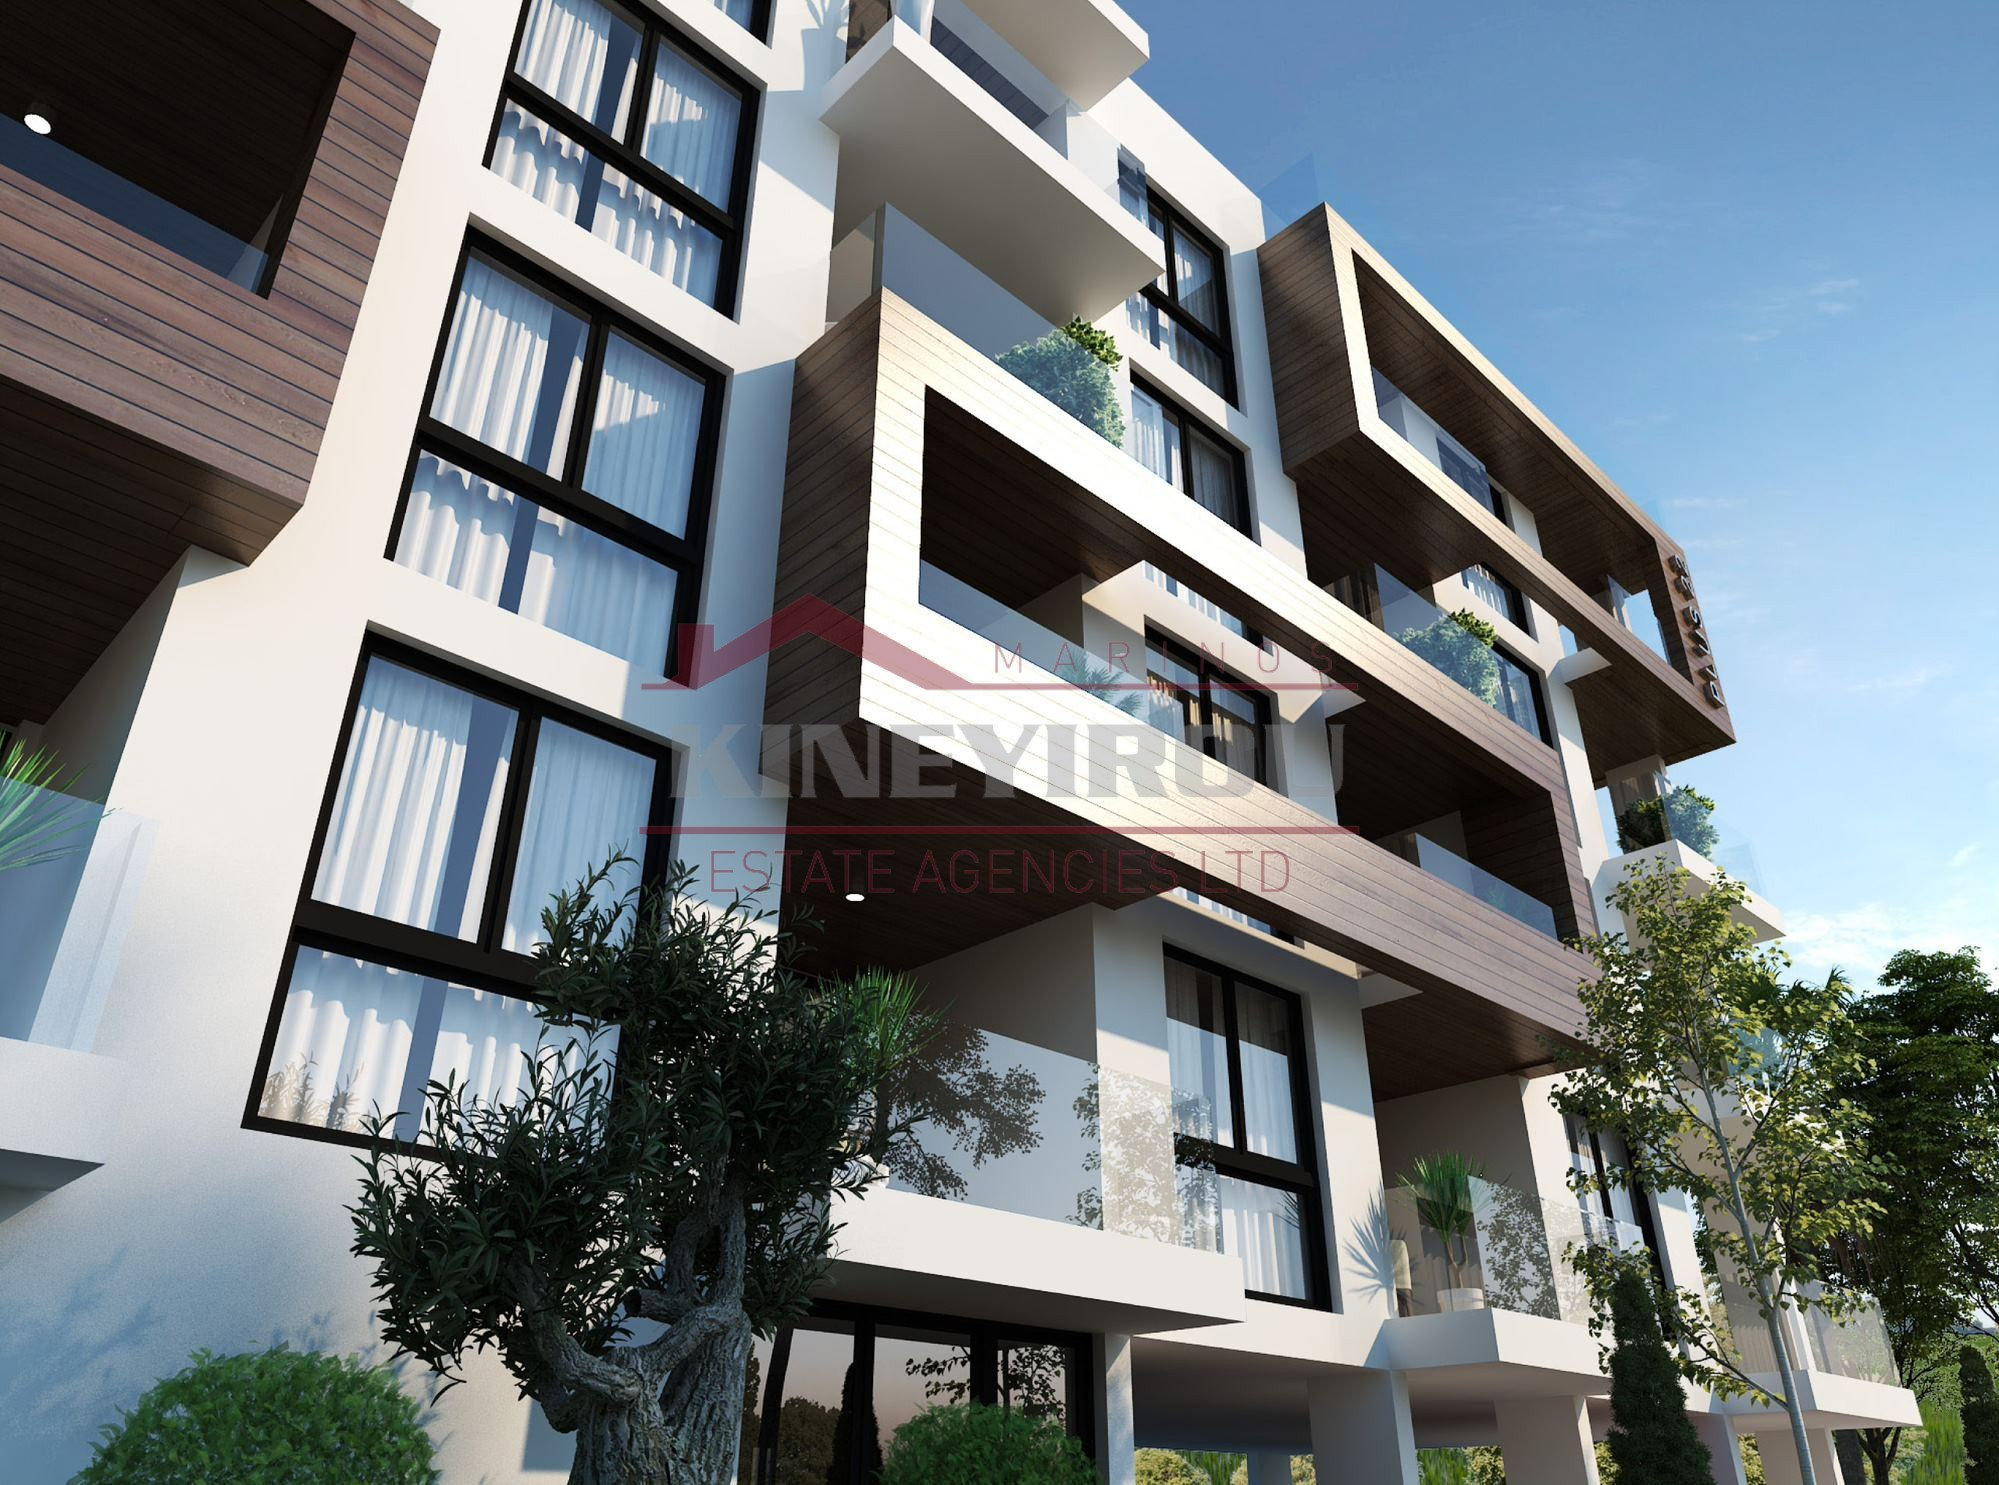 2 Bedroom apartment in Larnaca Town Center